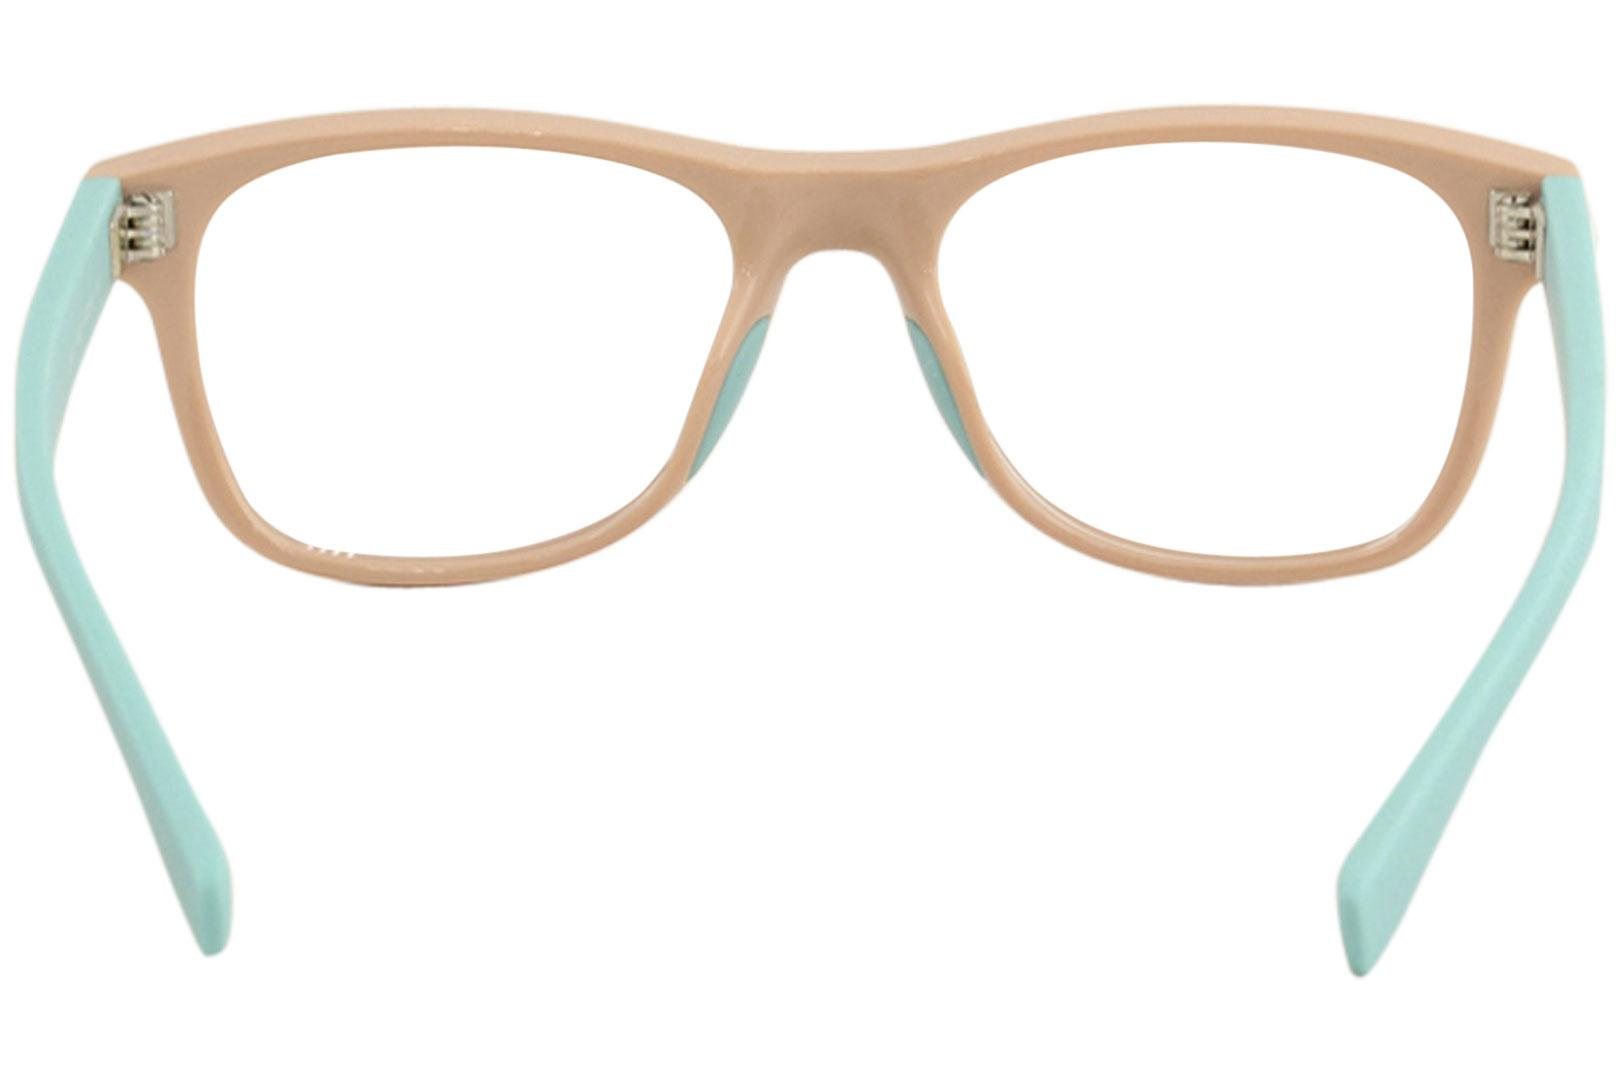 1a6a15895b9 Lacoste Youth Eyeglasses L3620 L 3620 Full Rim Optical Frame by Lacoste